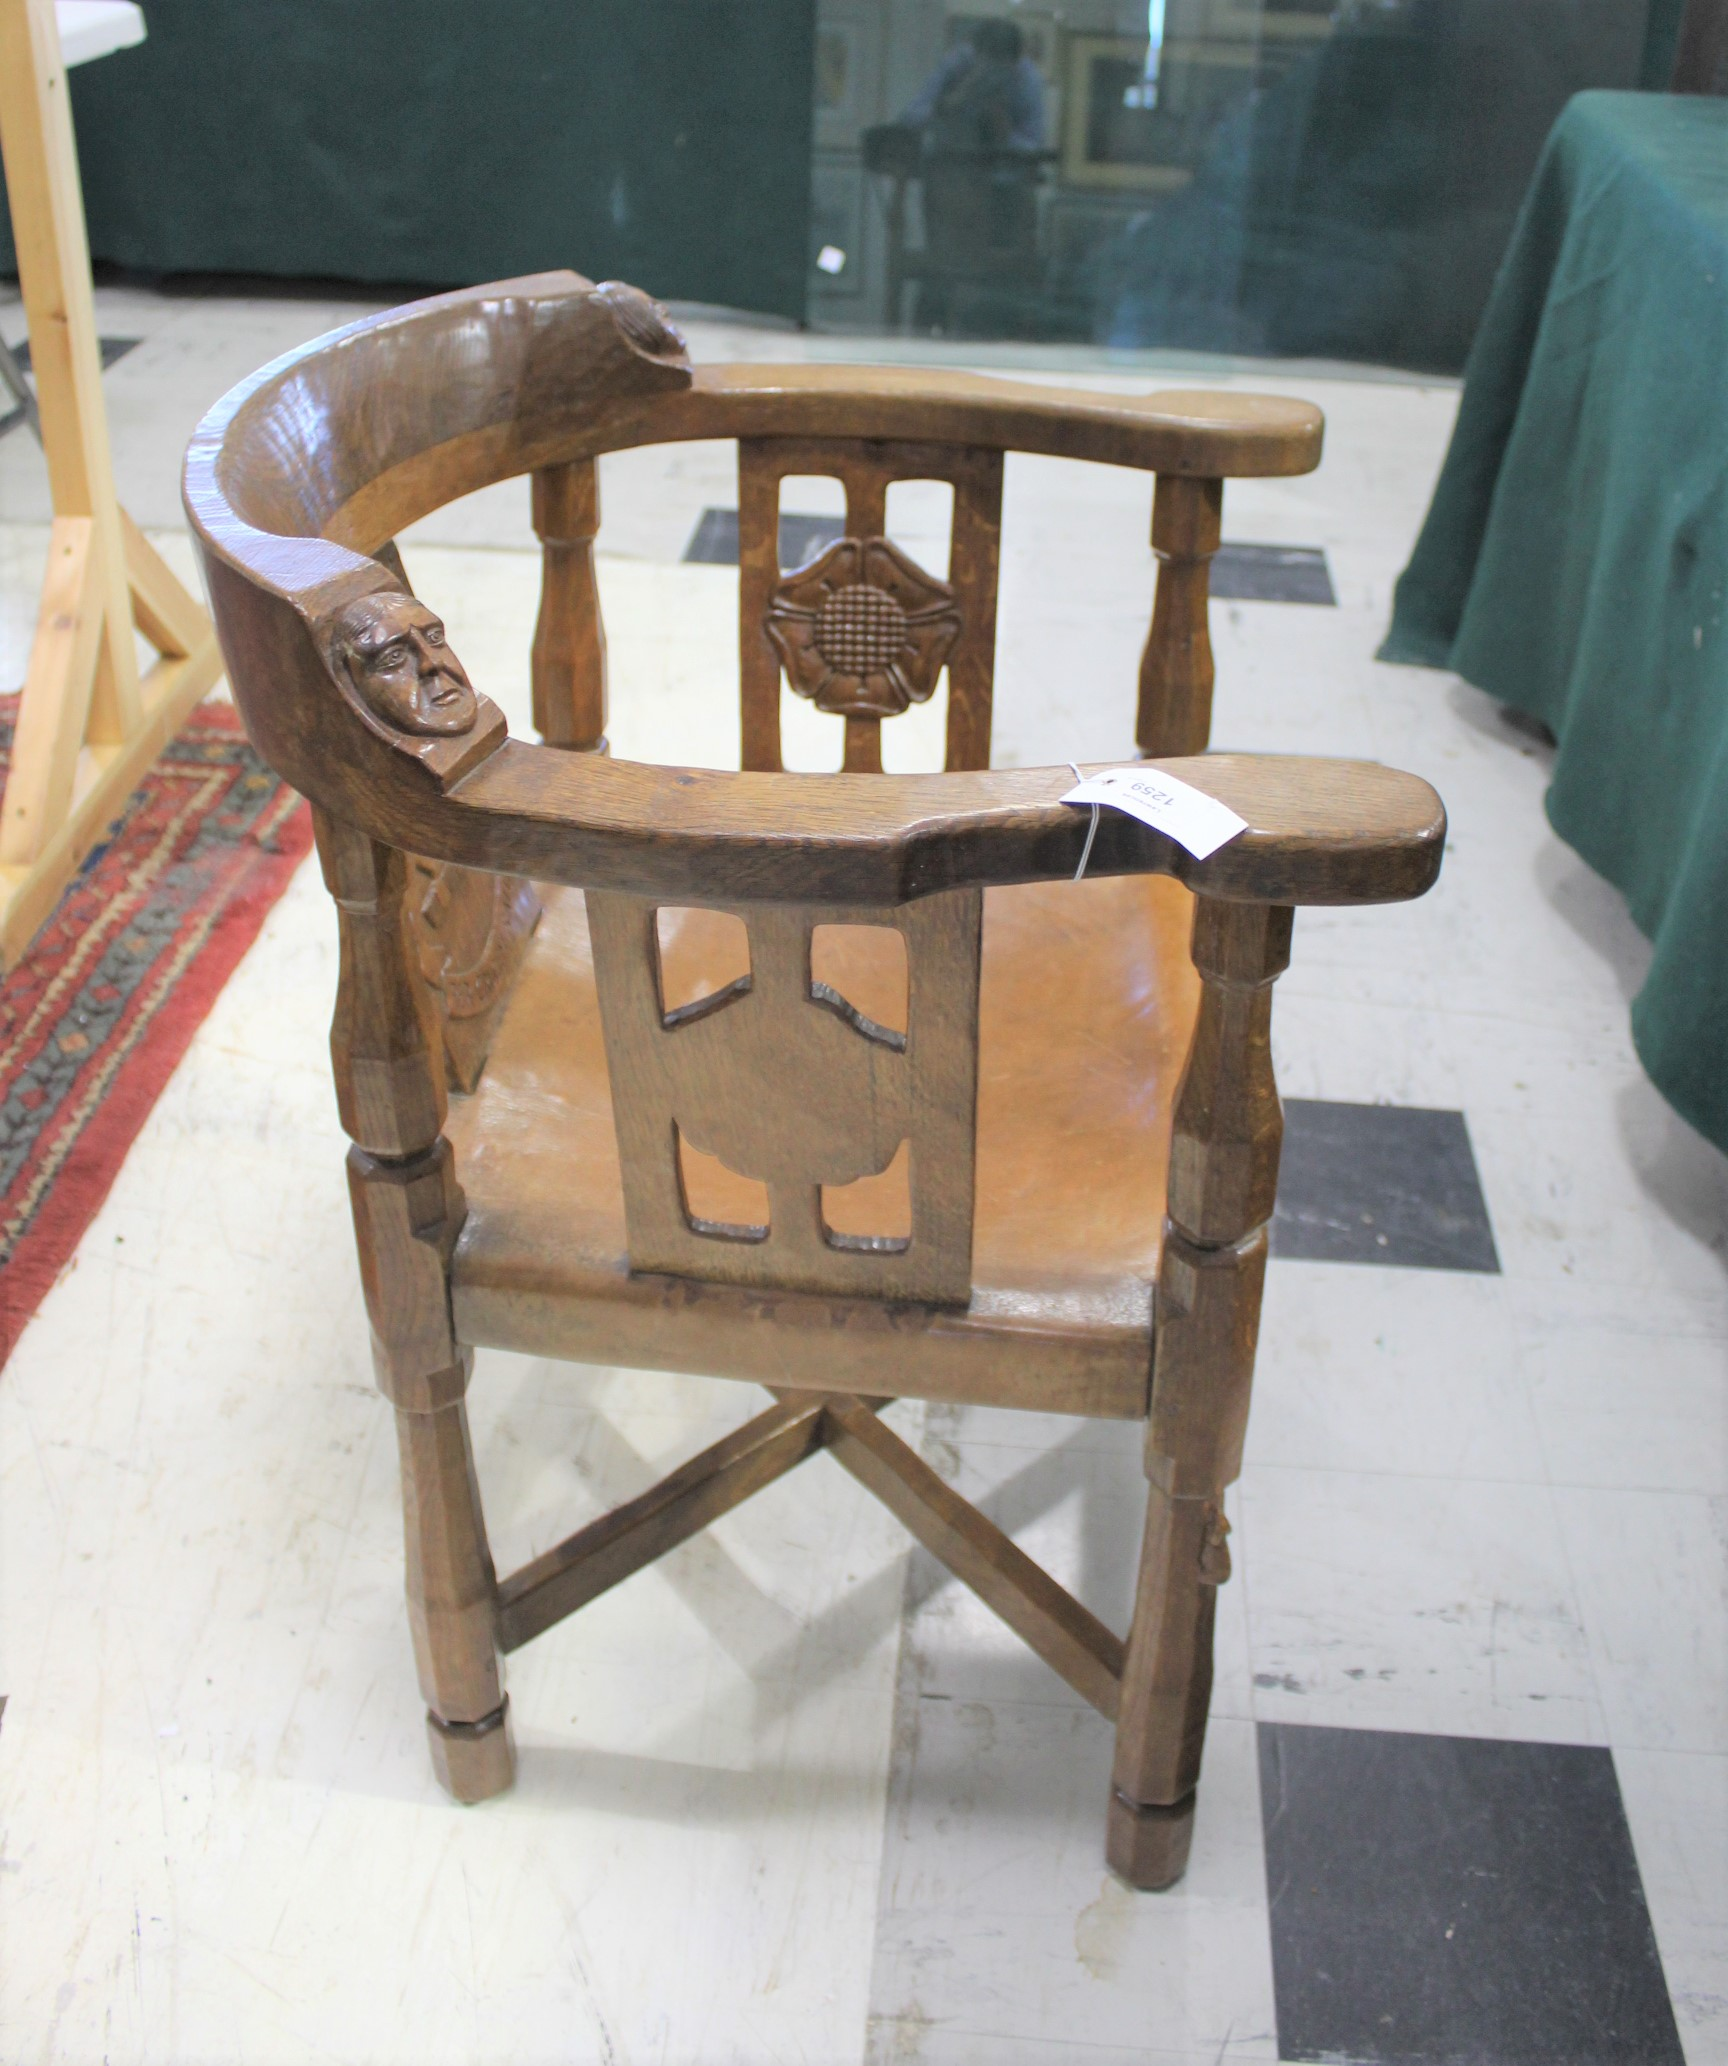 ROBERT THOMPSON OF KILBURN - MOUSEMAN MONKS CHAIR a circa 1920s/1930s oak Monk's armchair with a - Image 22 of 27